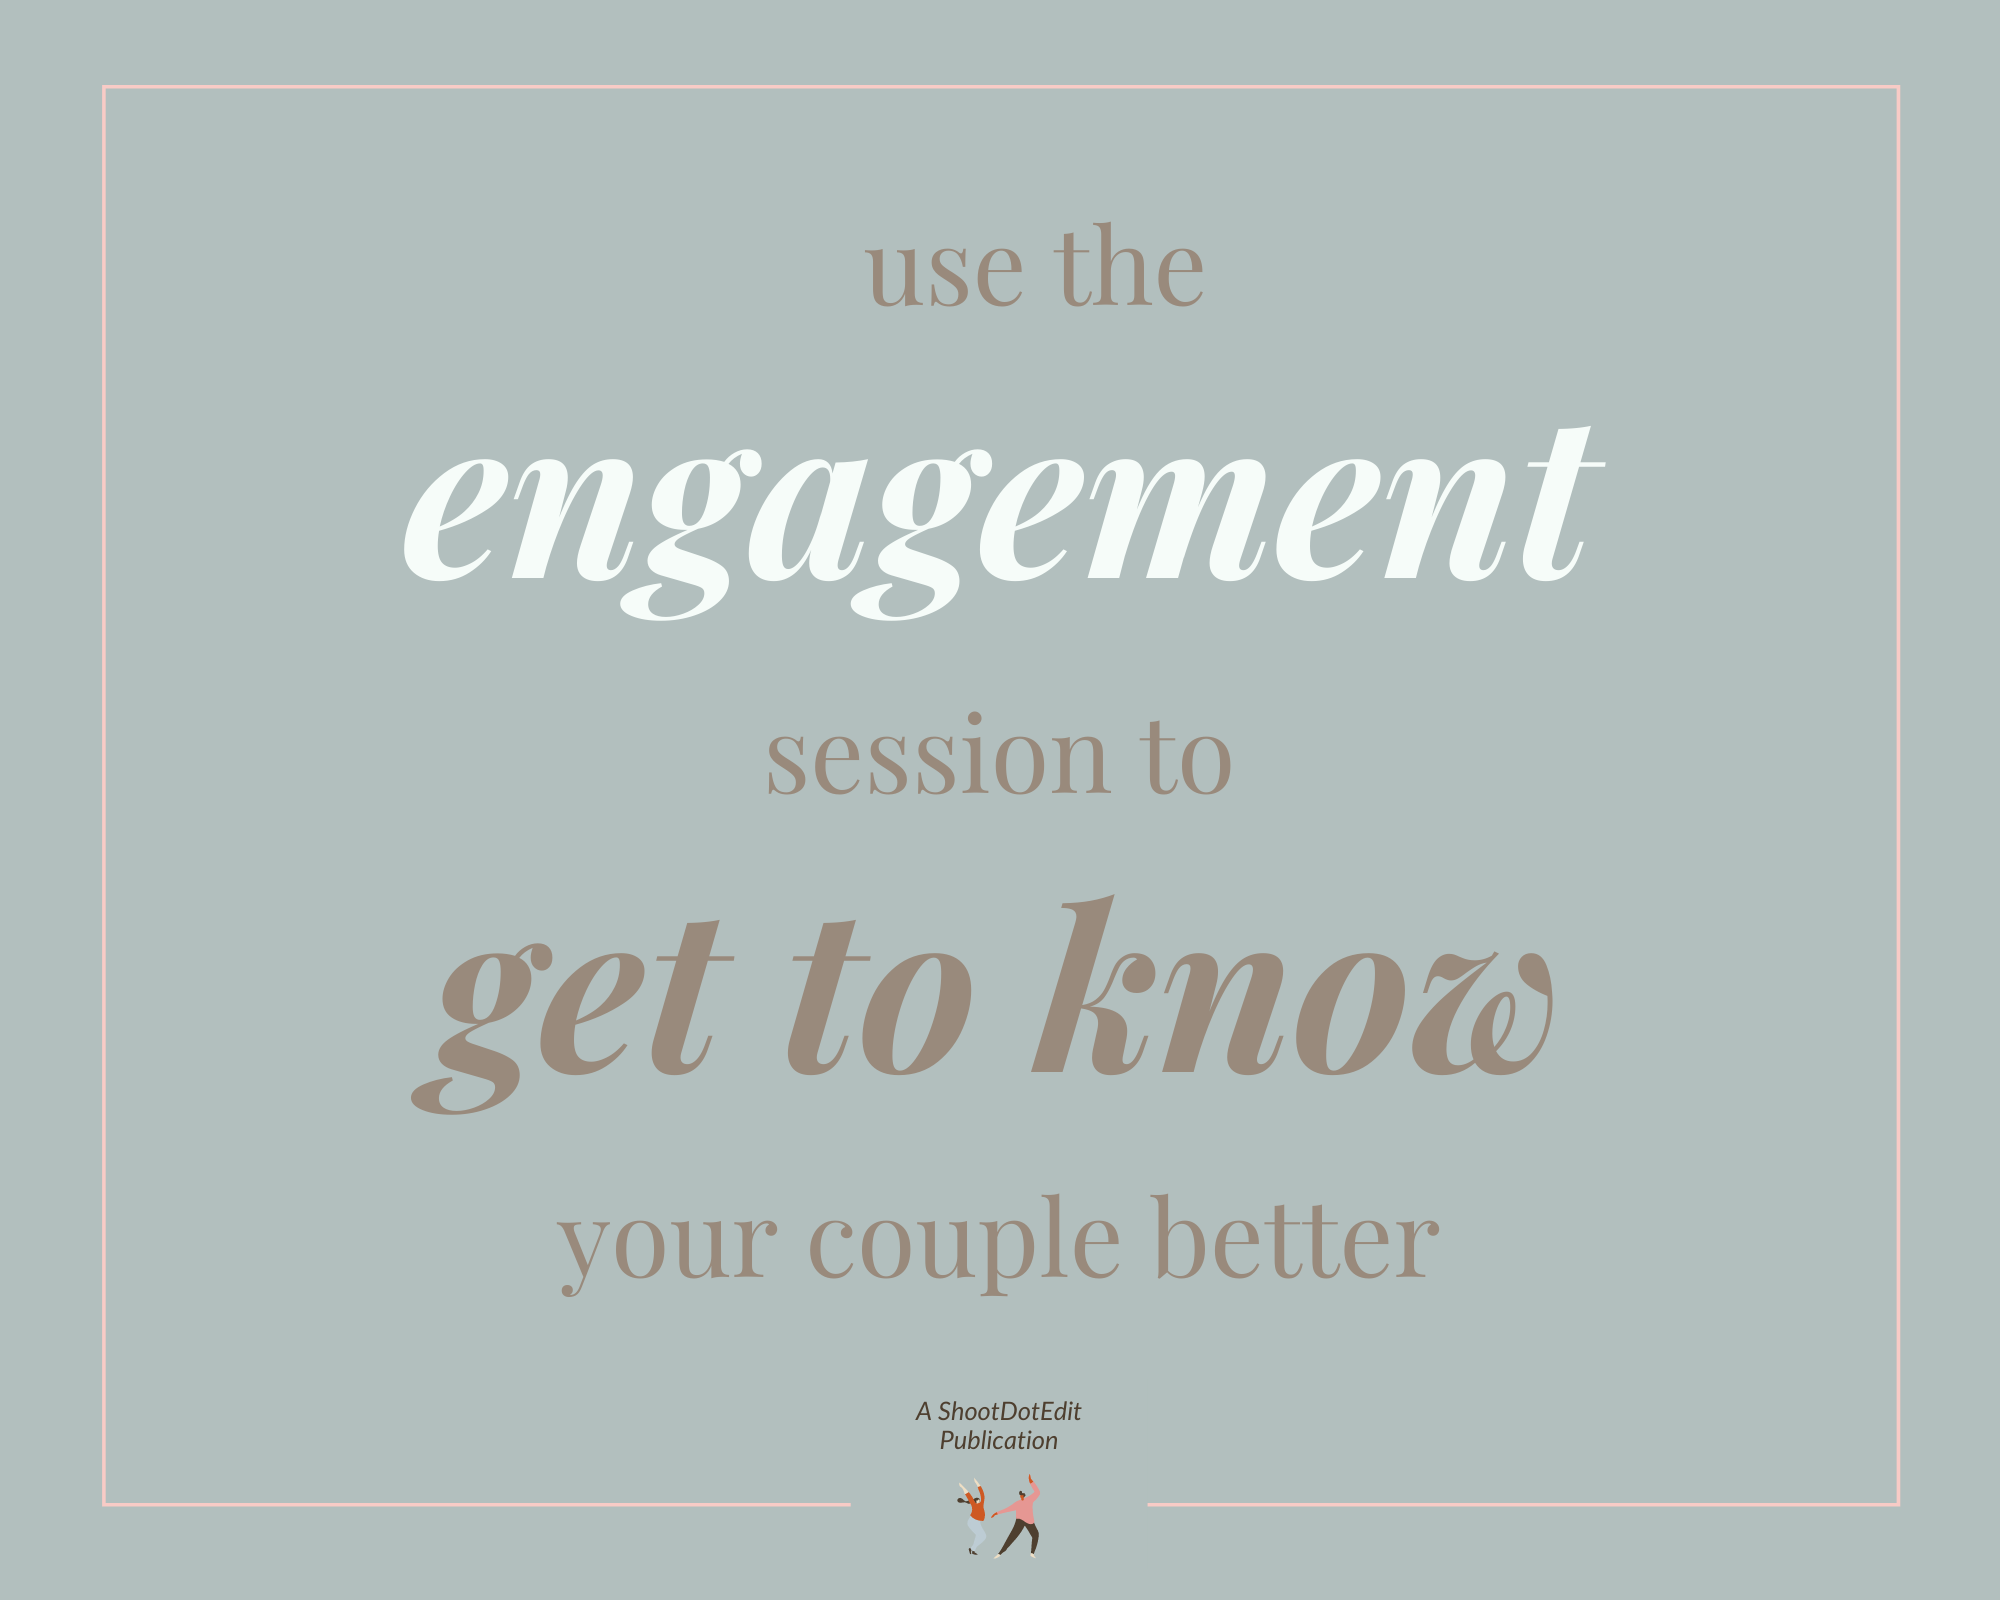 Infographic stating use the engagement sessions to get to know your couple better